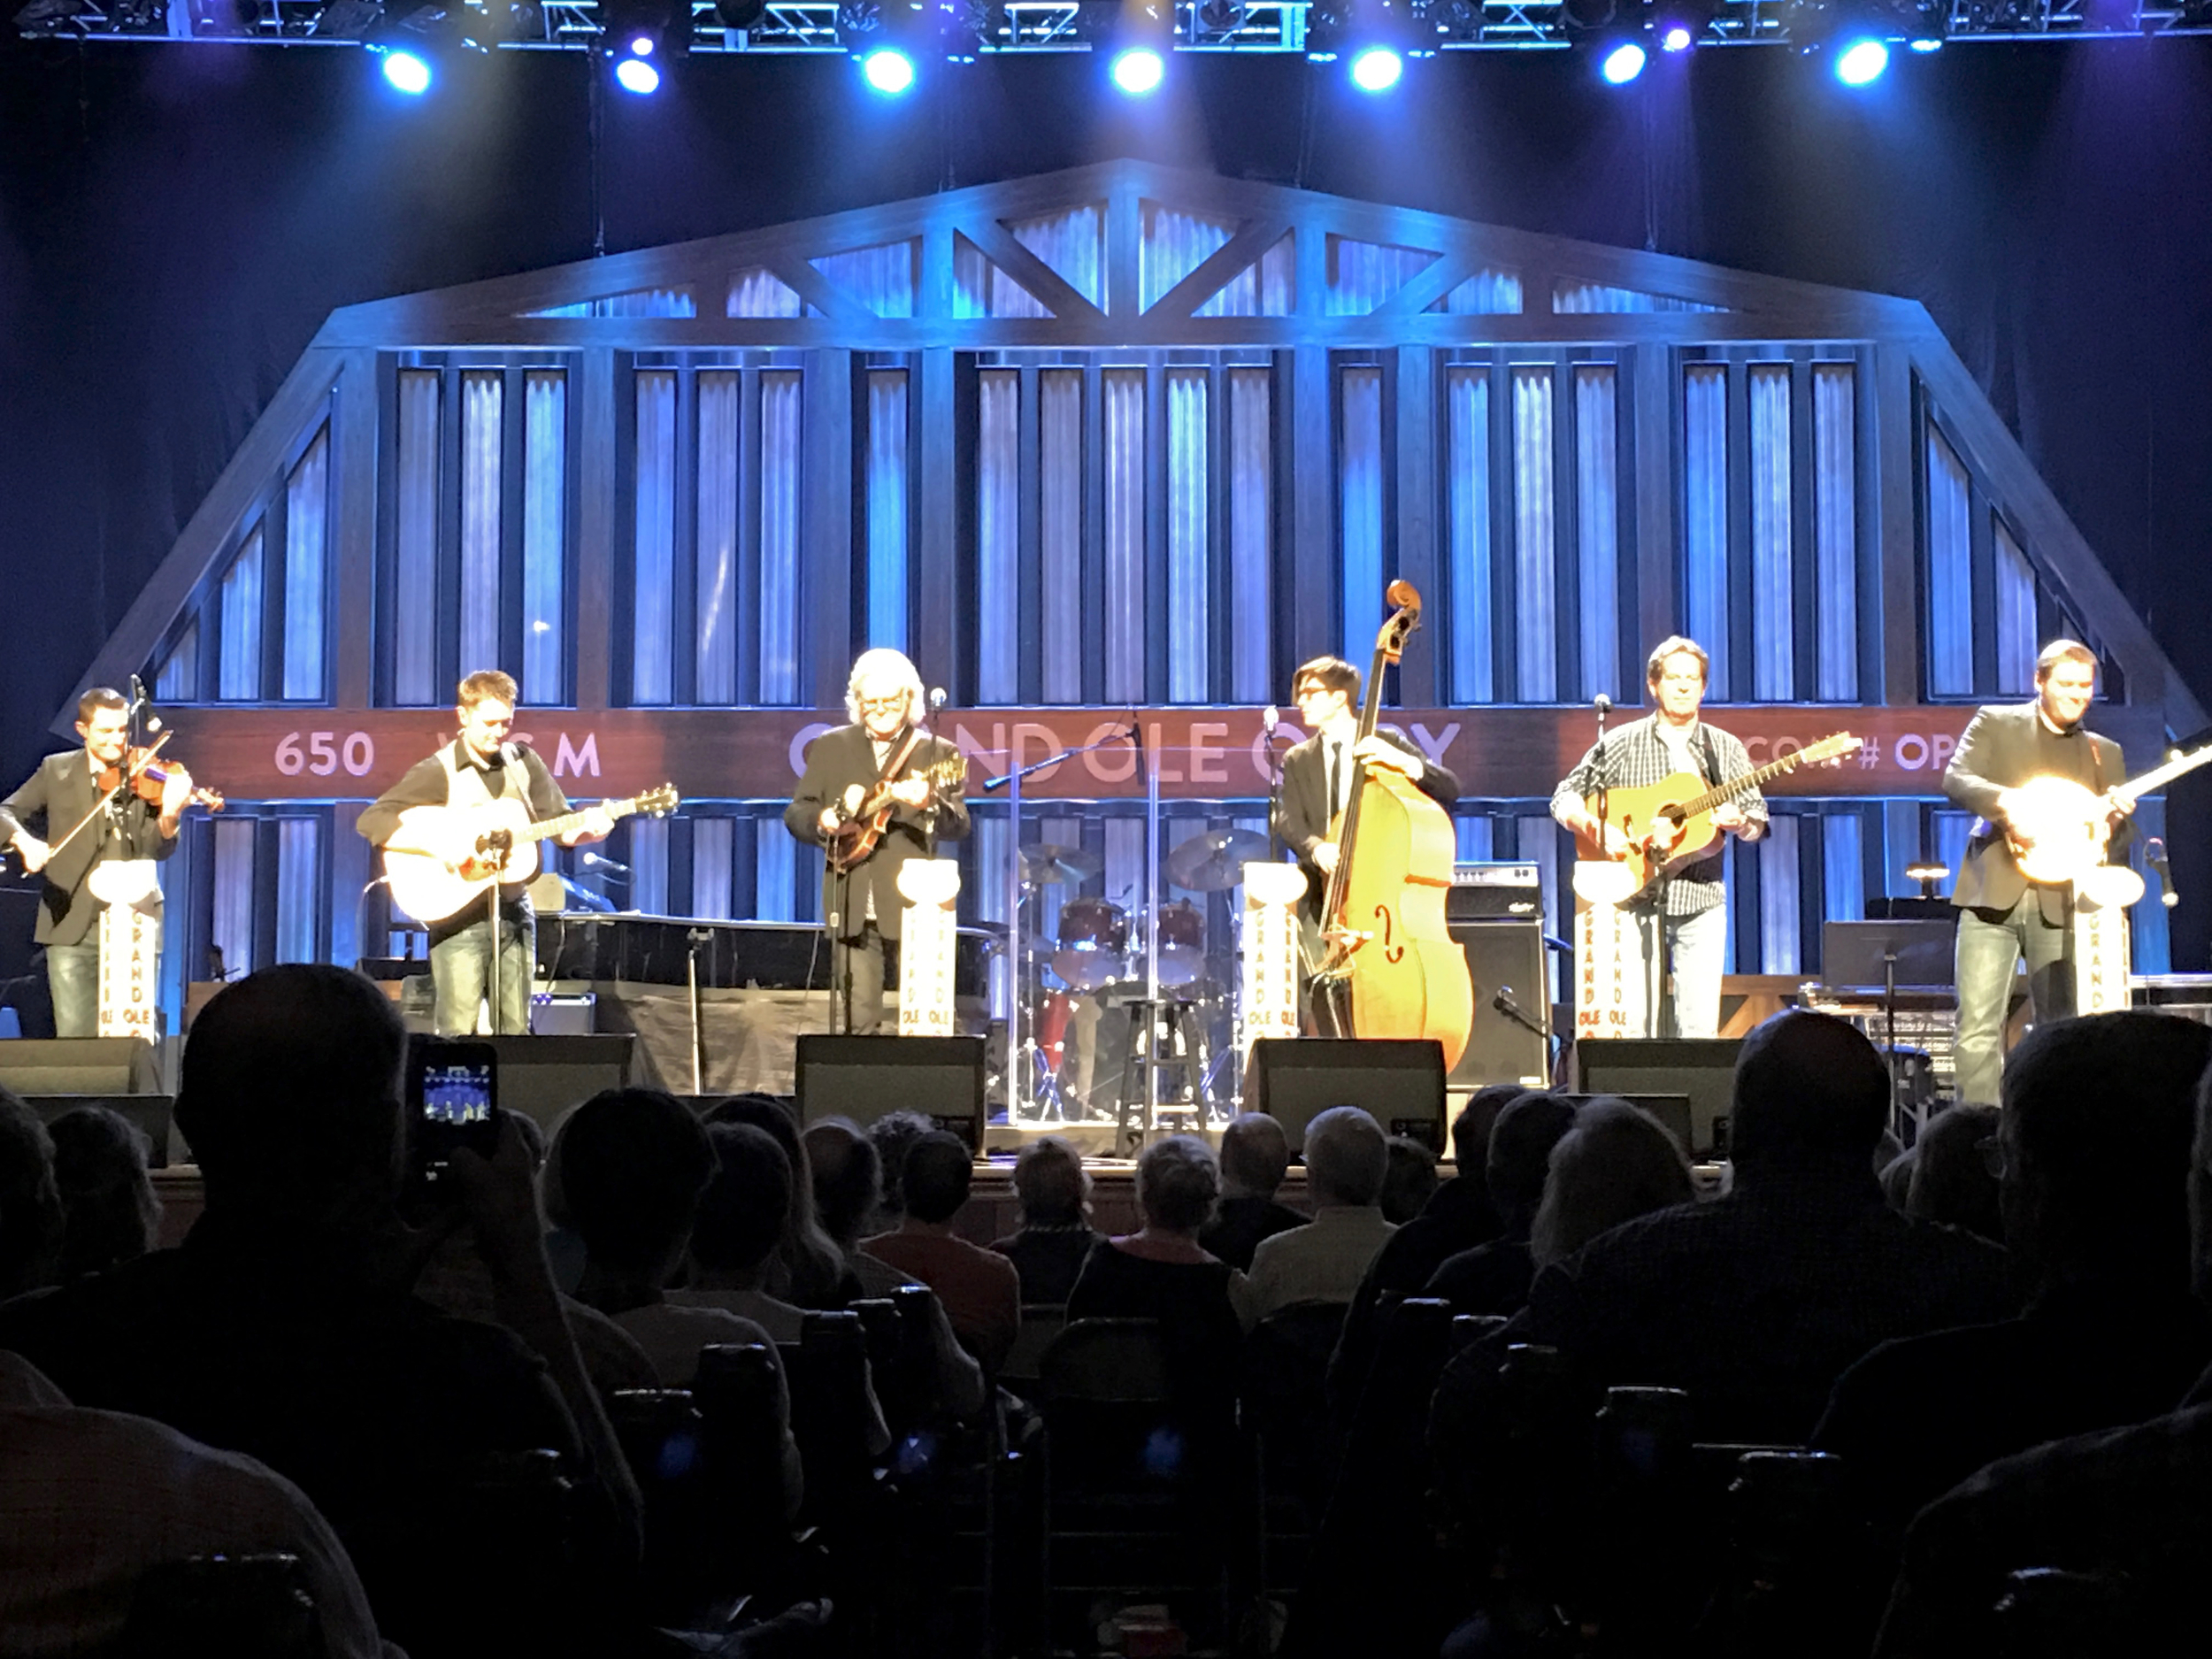 Jake debuting with Ricky Skaggs and Kentucky Thunder in the Ryman Auditorium for the Grand Ole Opry December 11th 2015.